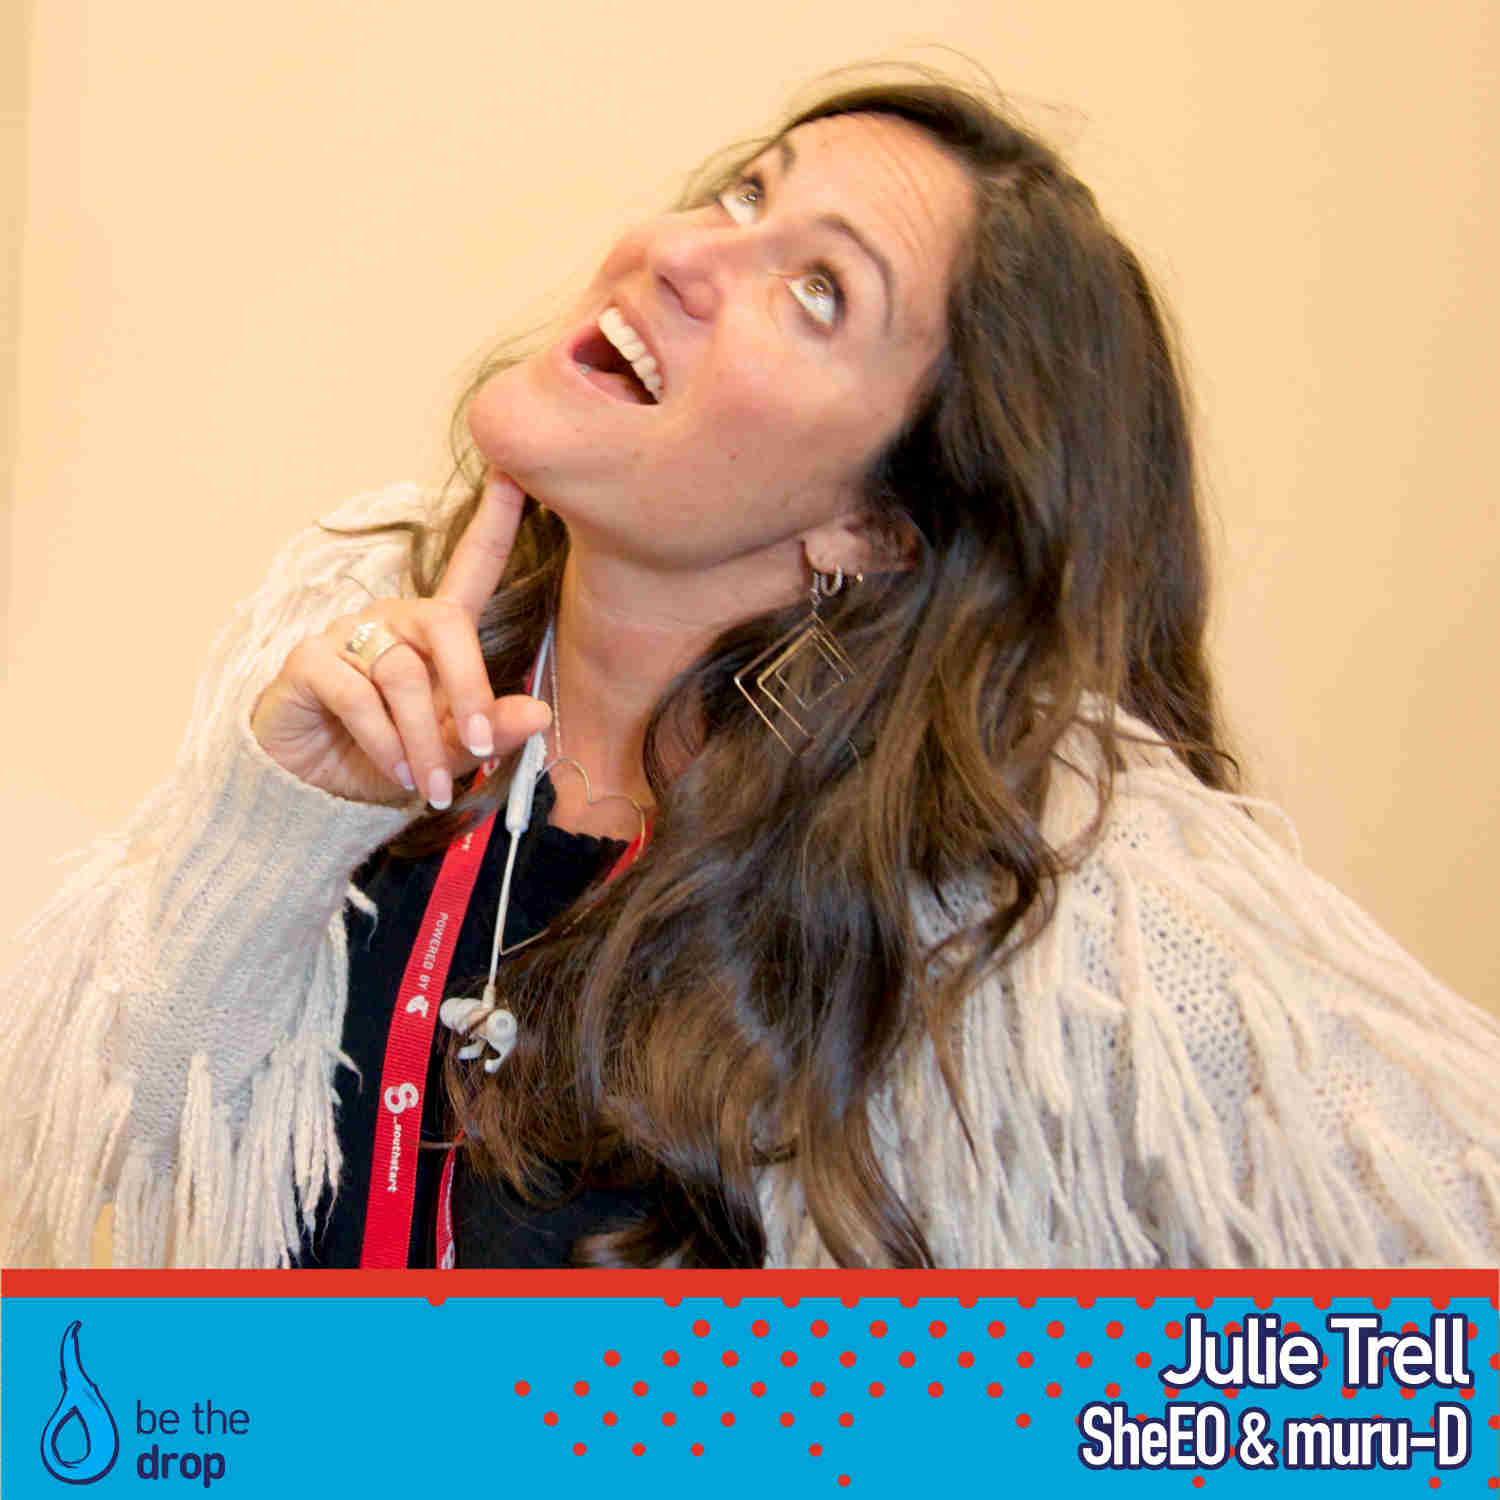 Julie Trell Discusses Supporting Female Founded Startups